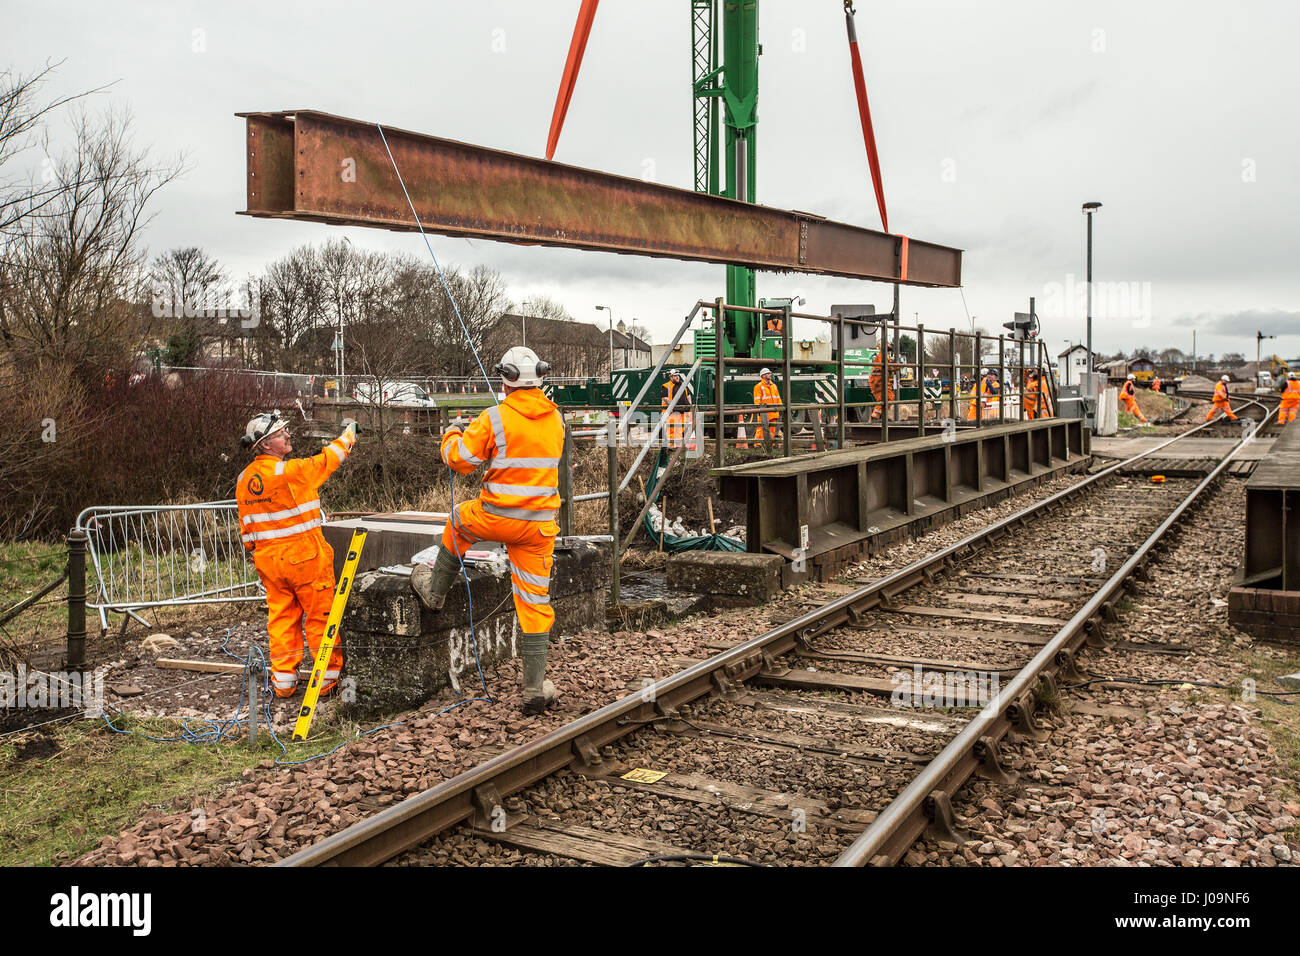 Rail construction workers installing a girder bridge - Stock Image